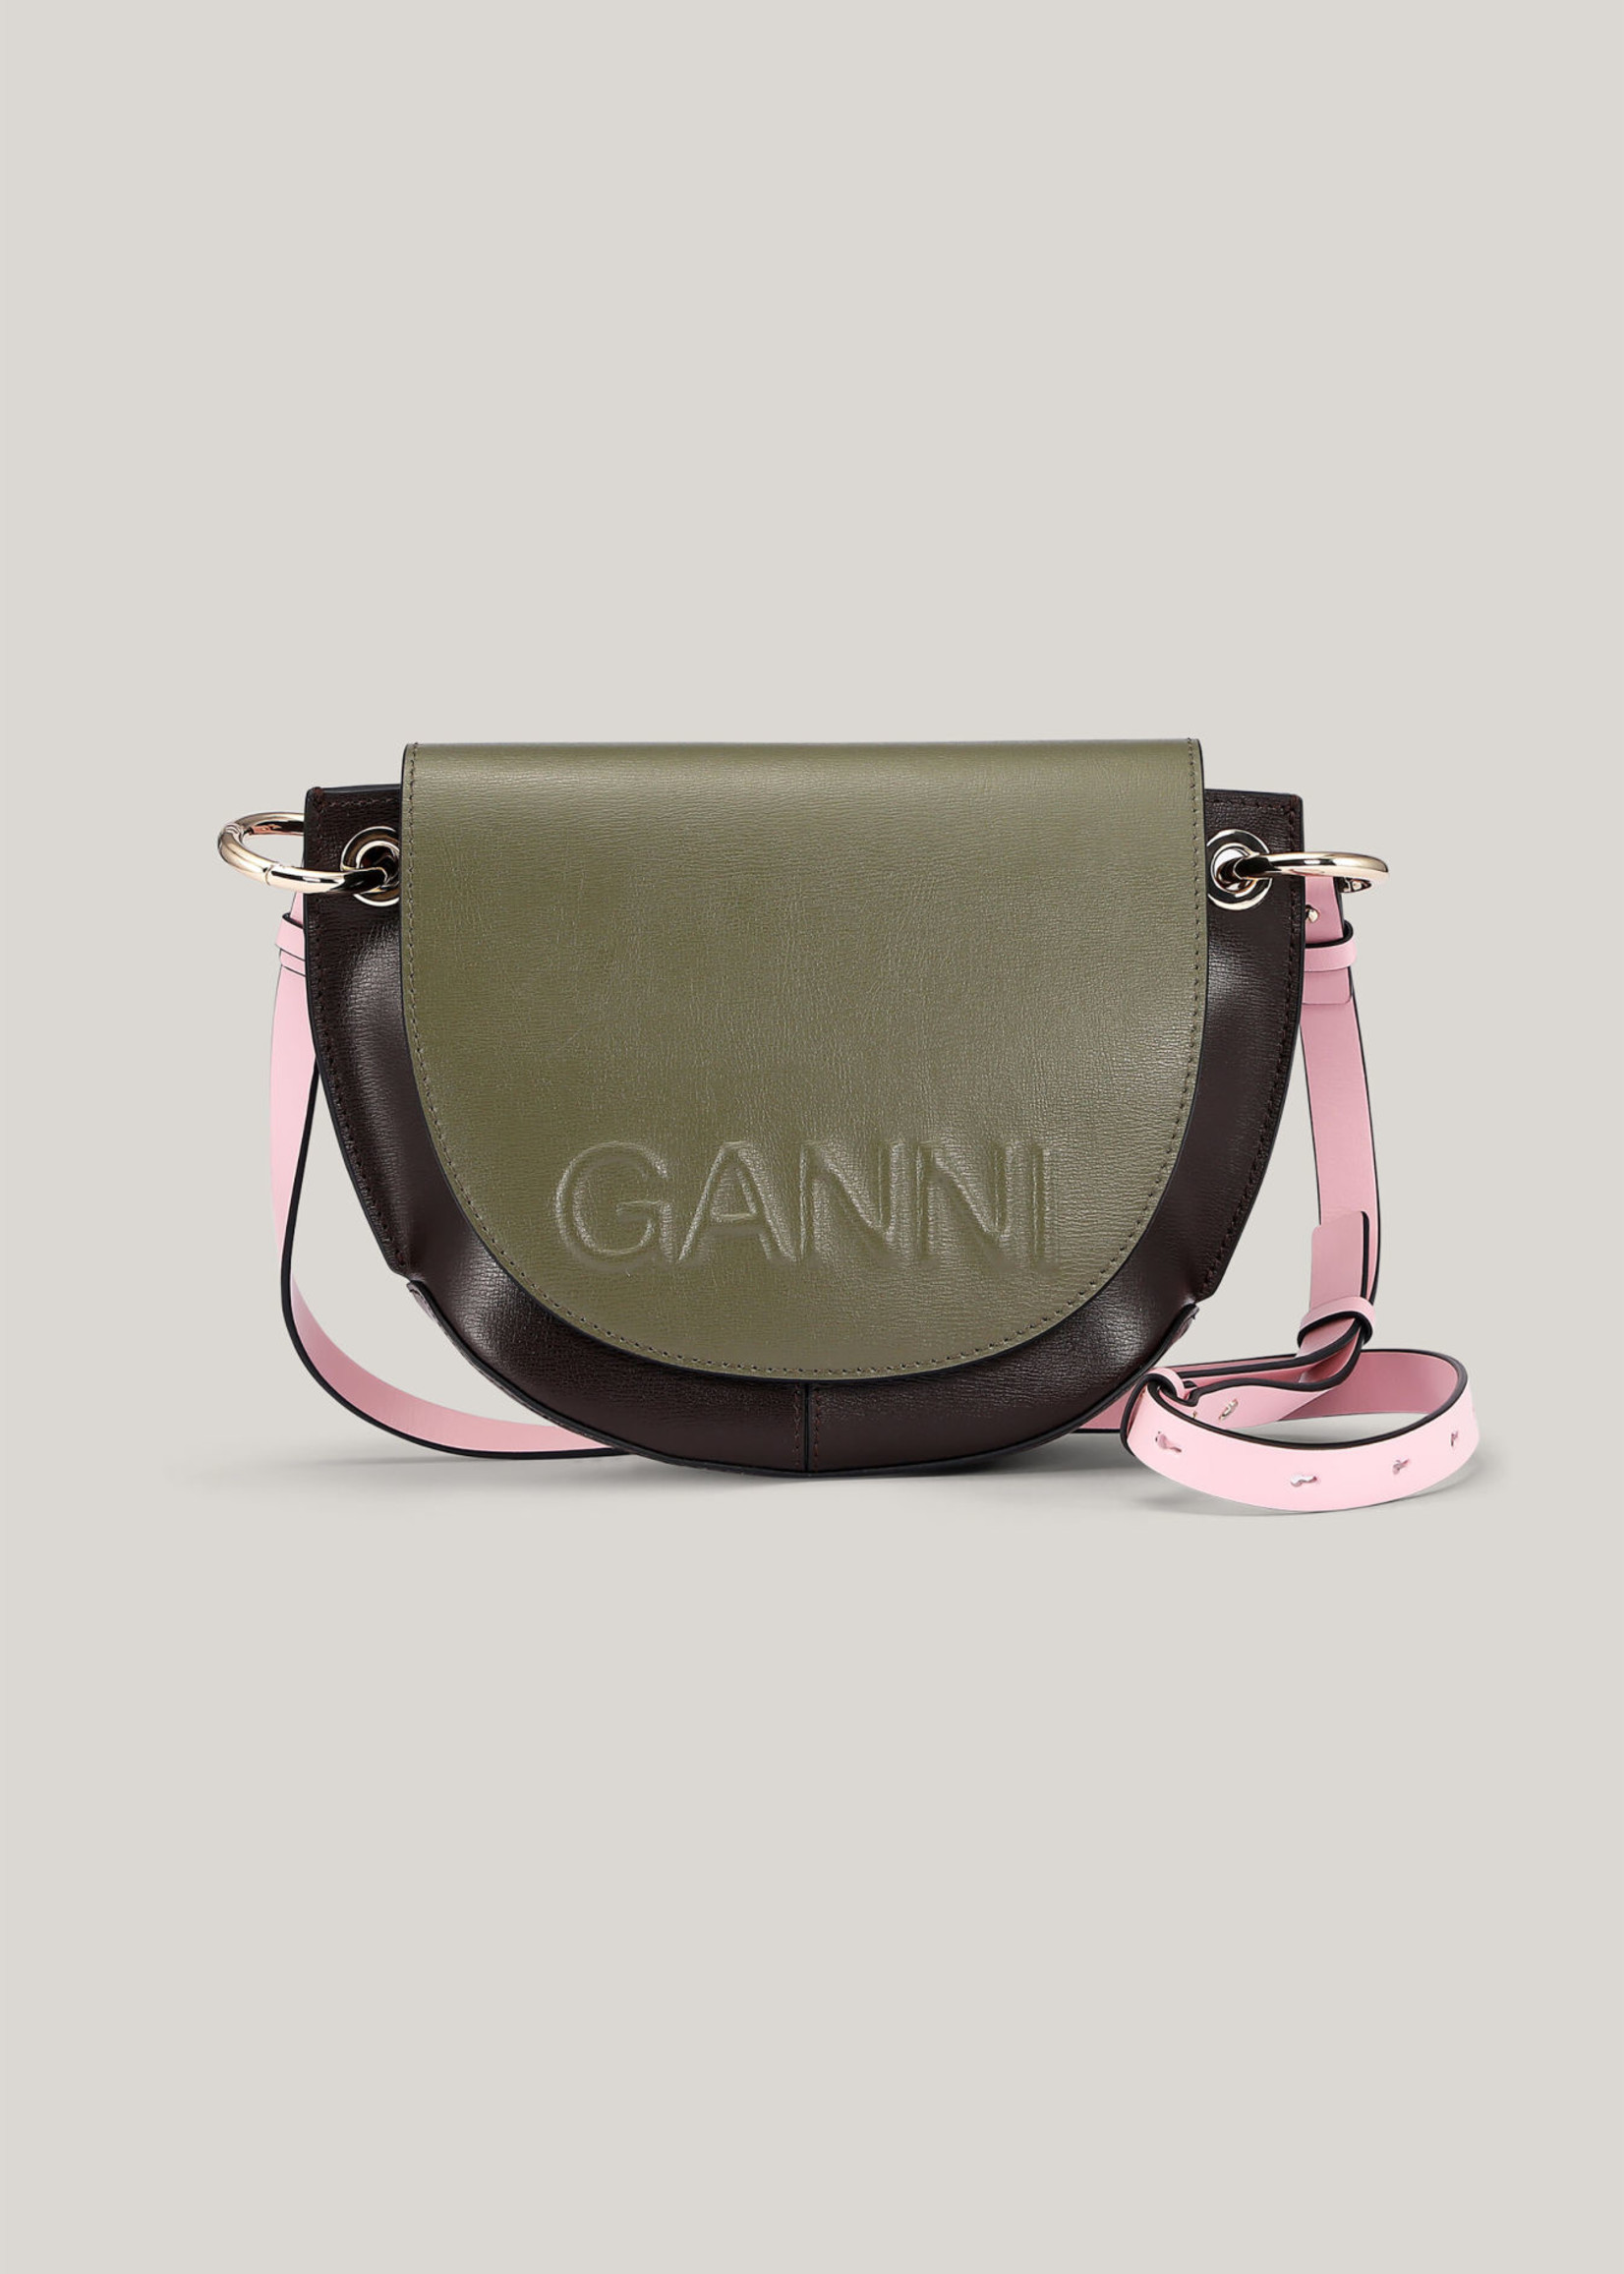 GANNI Recycled Leather Saddle Bag in Olive